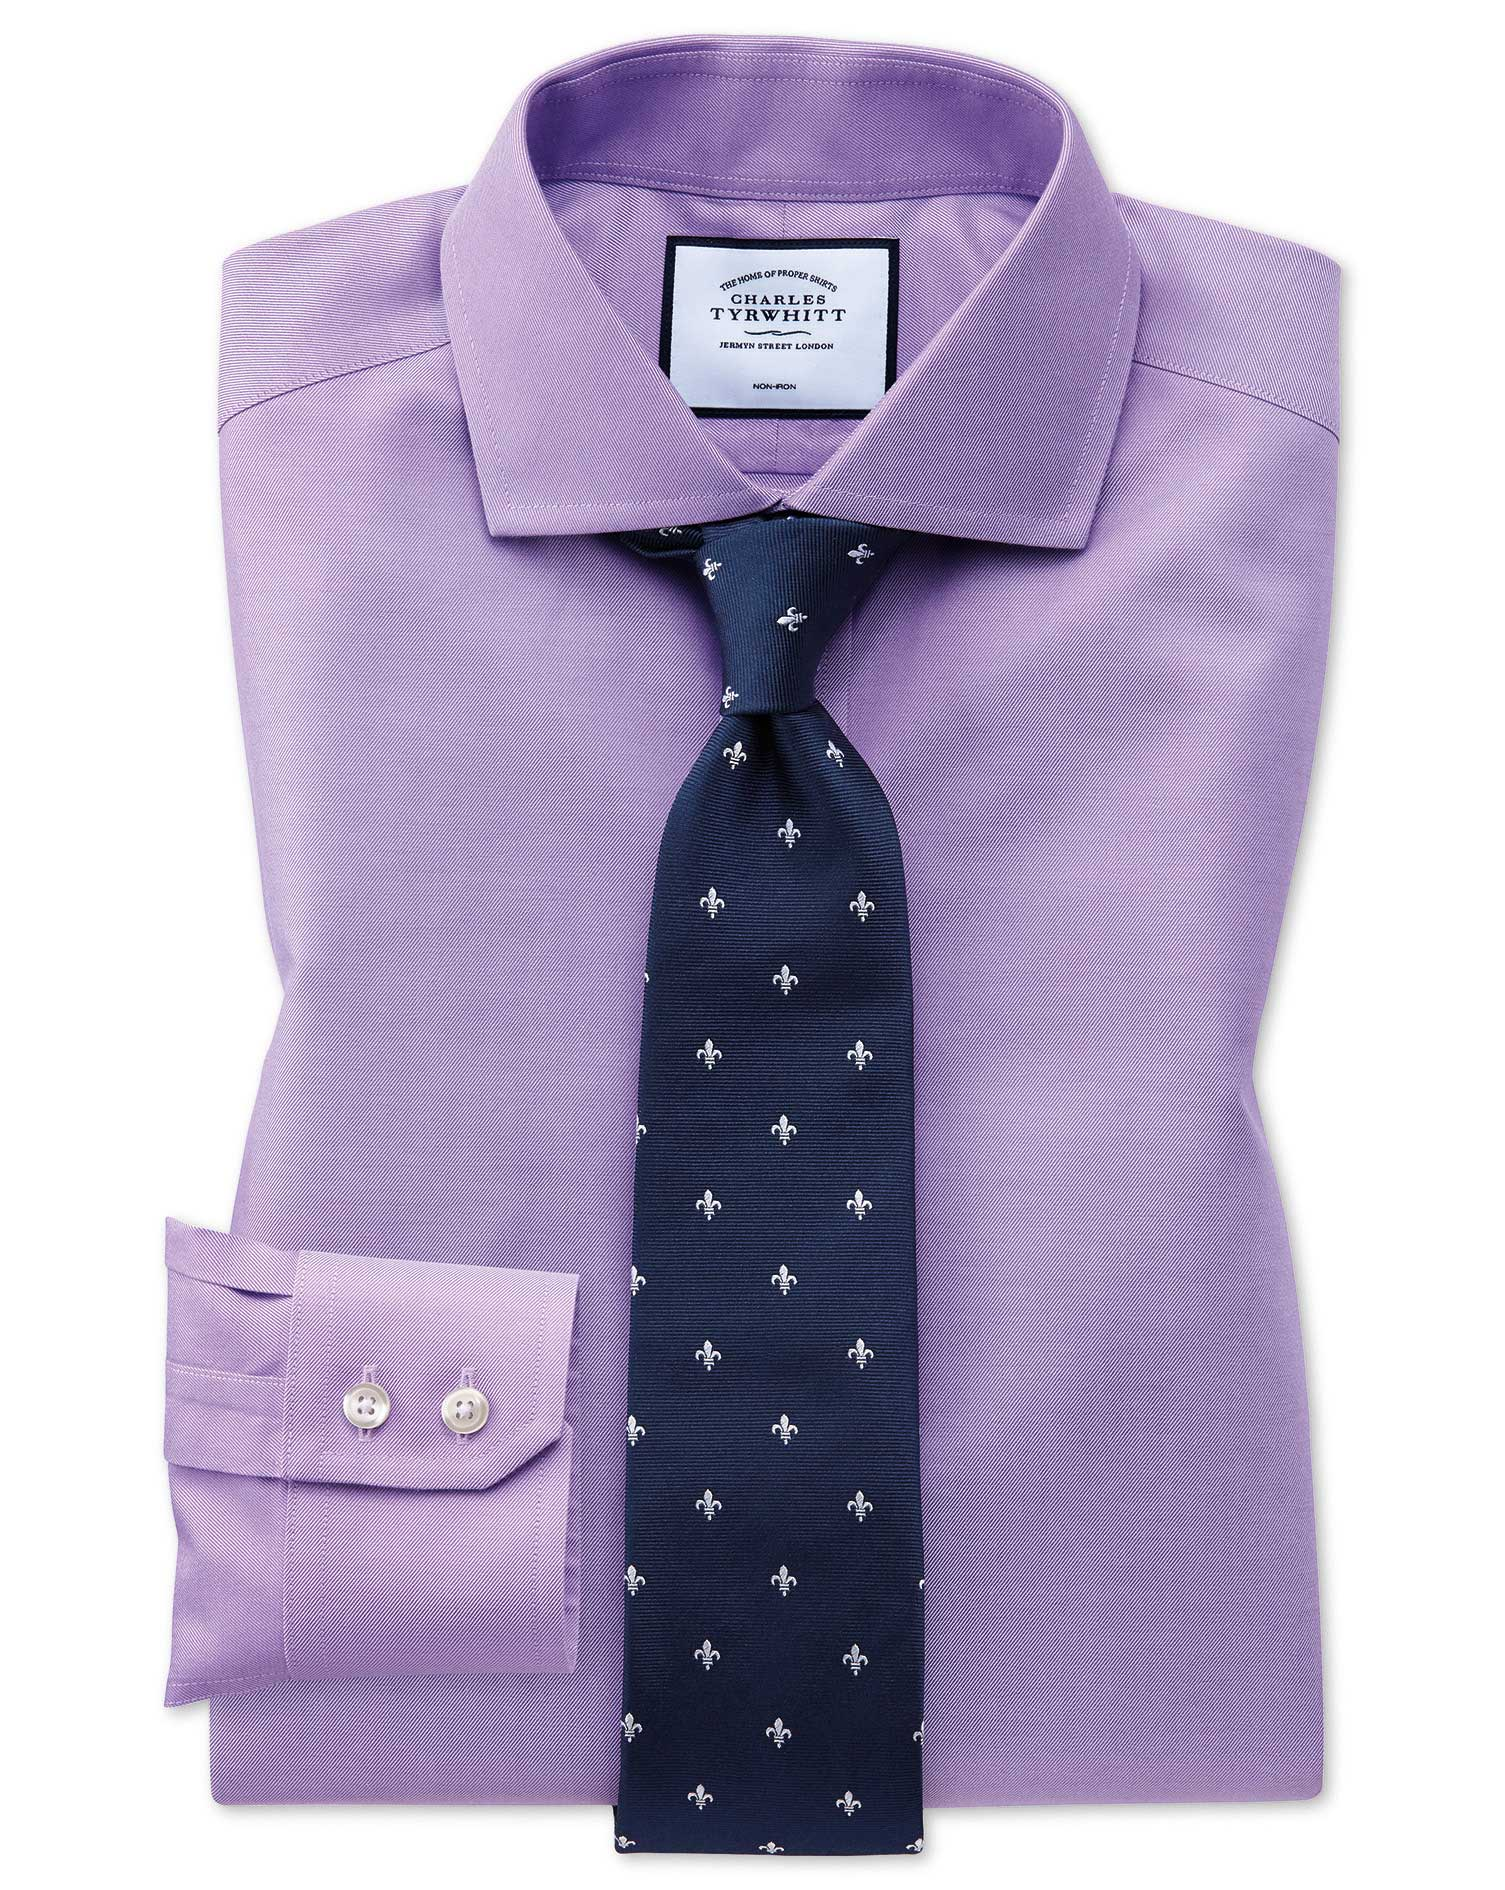 Extra Slim Fit Lilac Non-Iron Twill Cutaway Collar Cotton Formal Shirt Single Cuff Size 16.5/34 by C